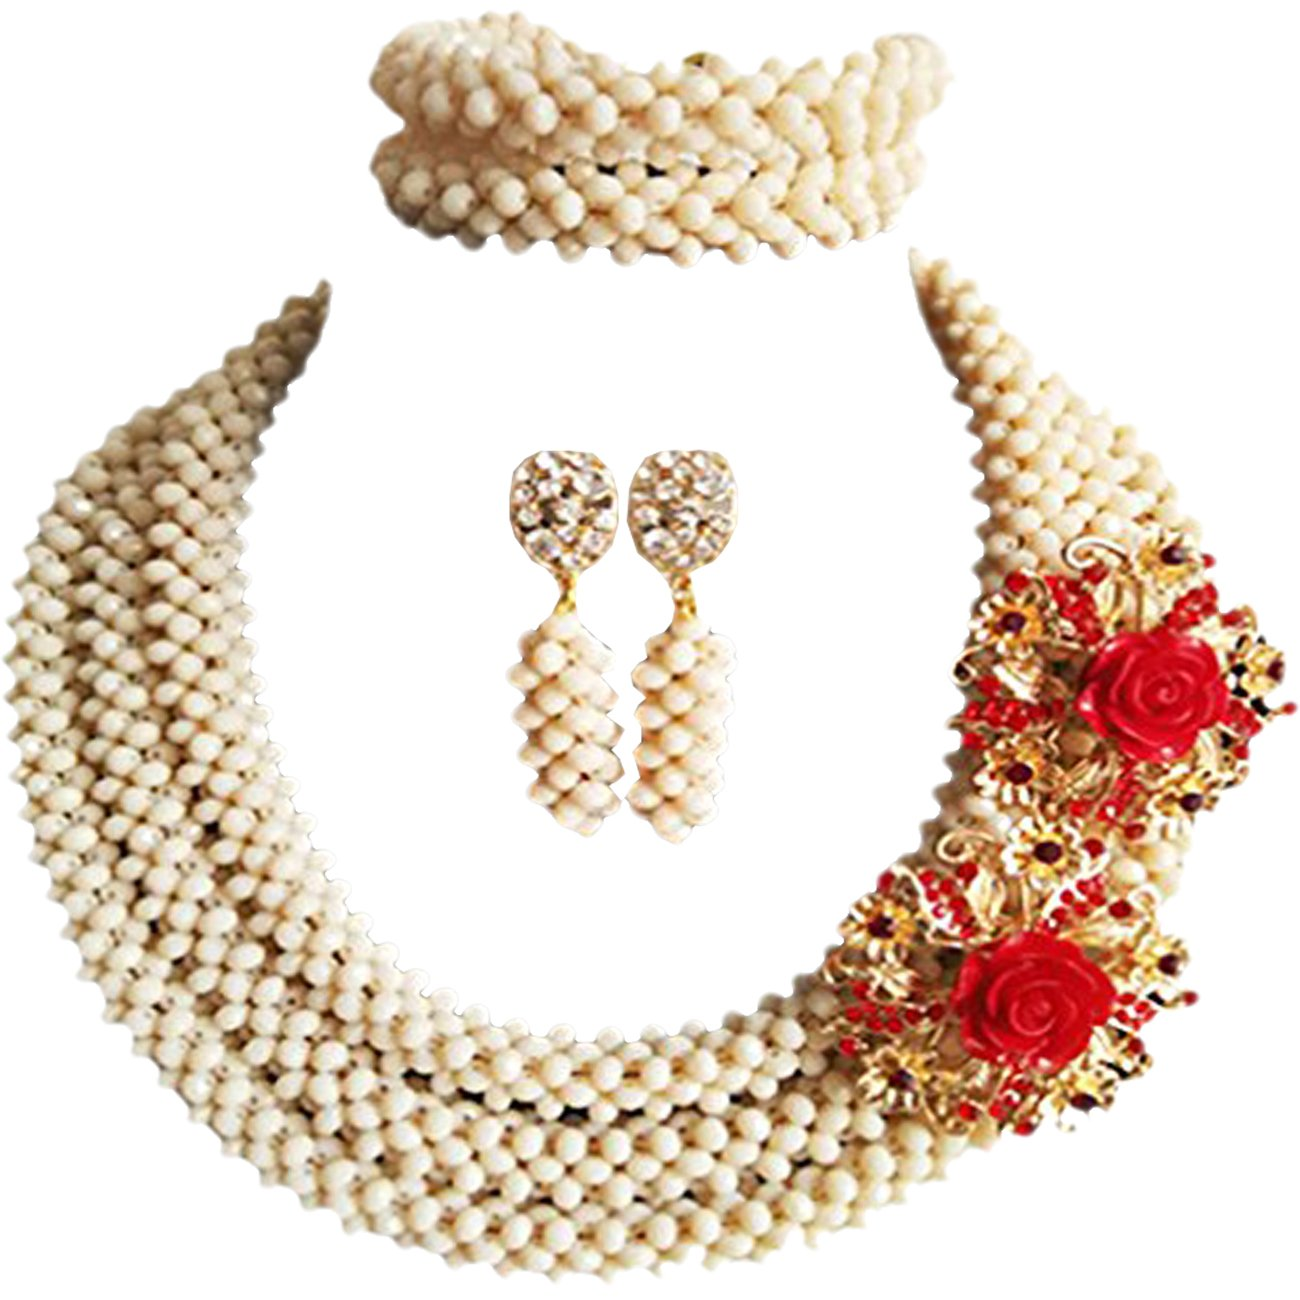 laanc Necklace Bracelet Earrings Womens,Party,Gift,Multi-Use African Beads Nigerian Wedding Jewelry Sets (Ivory)